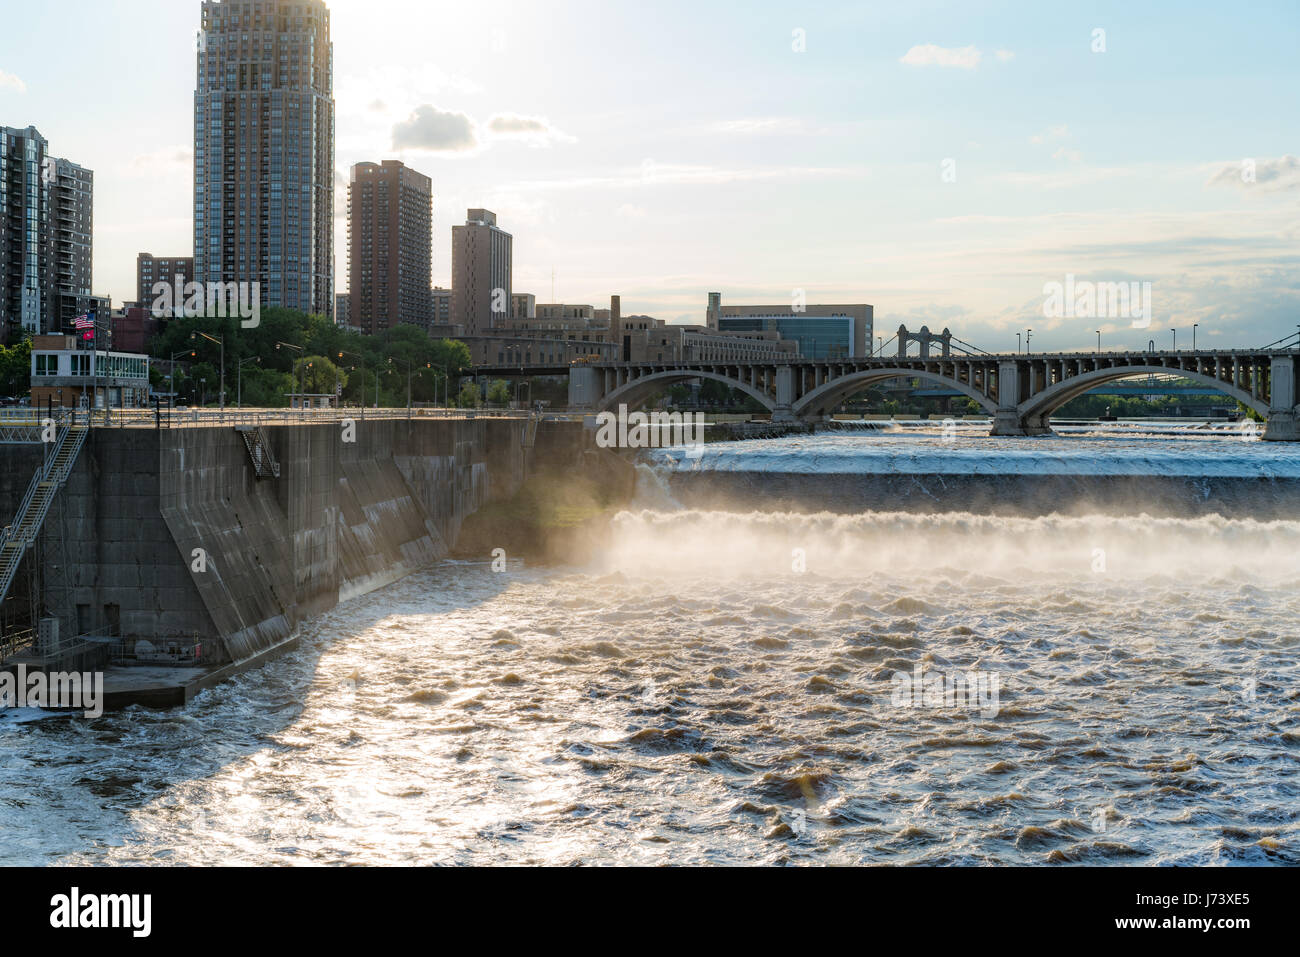 Seen from the Stone Arch Bridge in Minneapolis - Stock Image